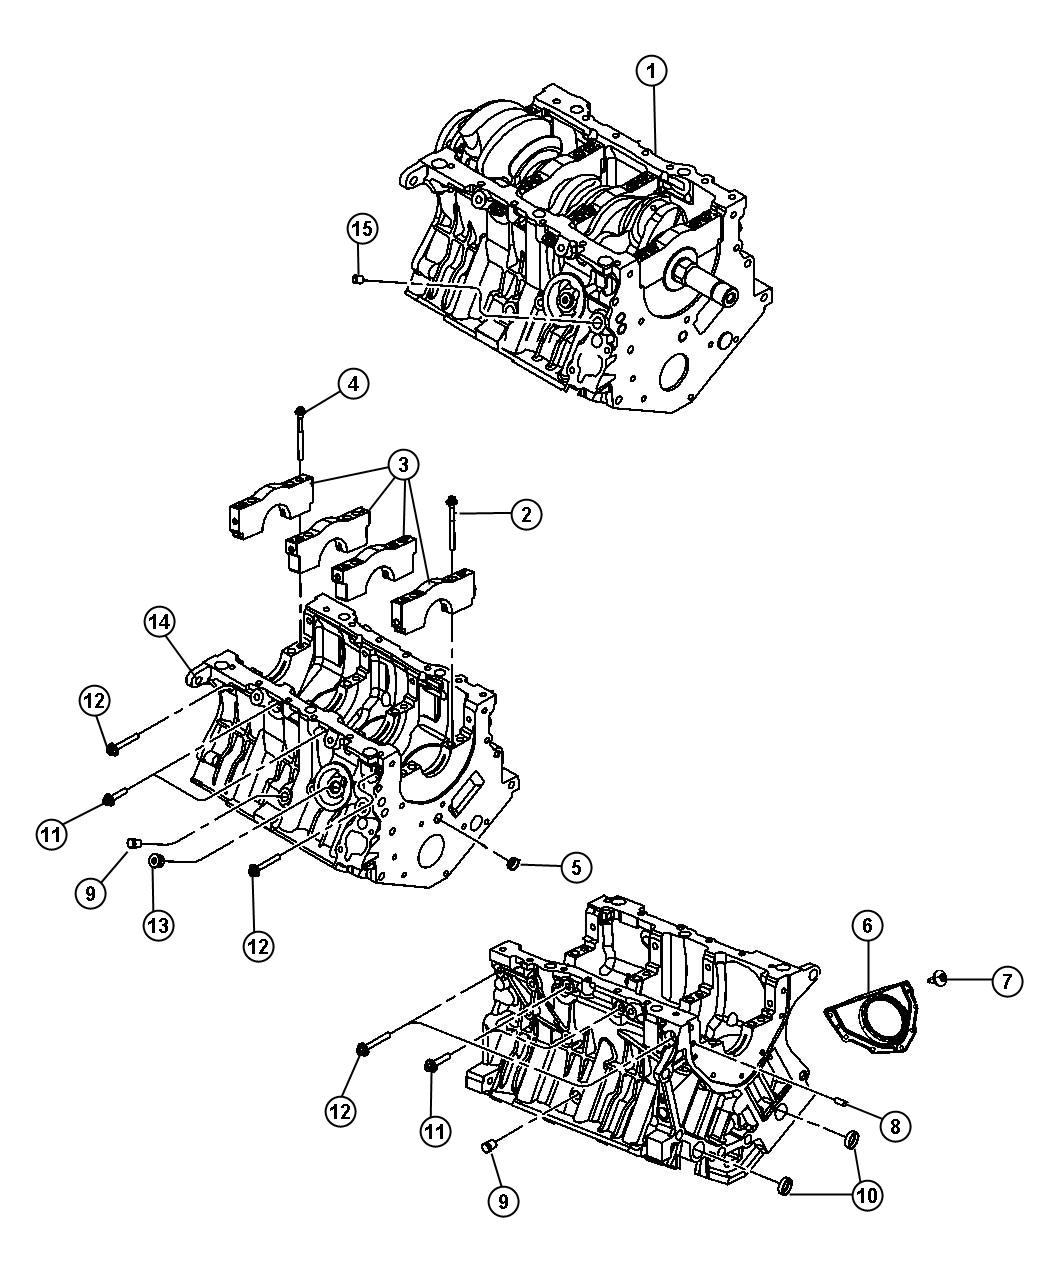 Dodge Challenger Bolt Used For Bolt And Washer Hex Head